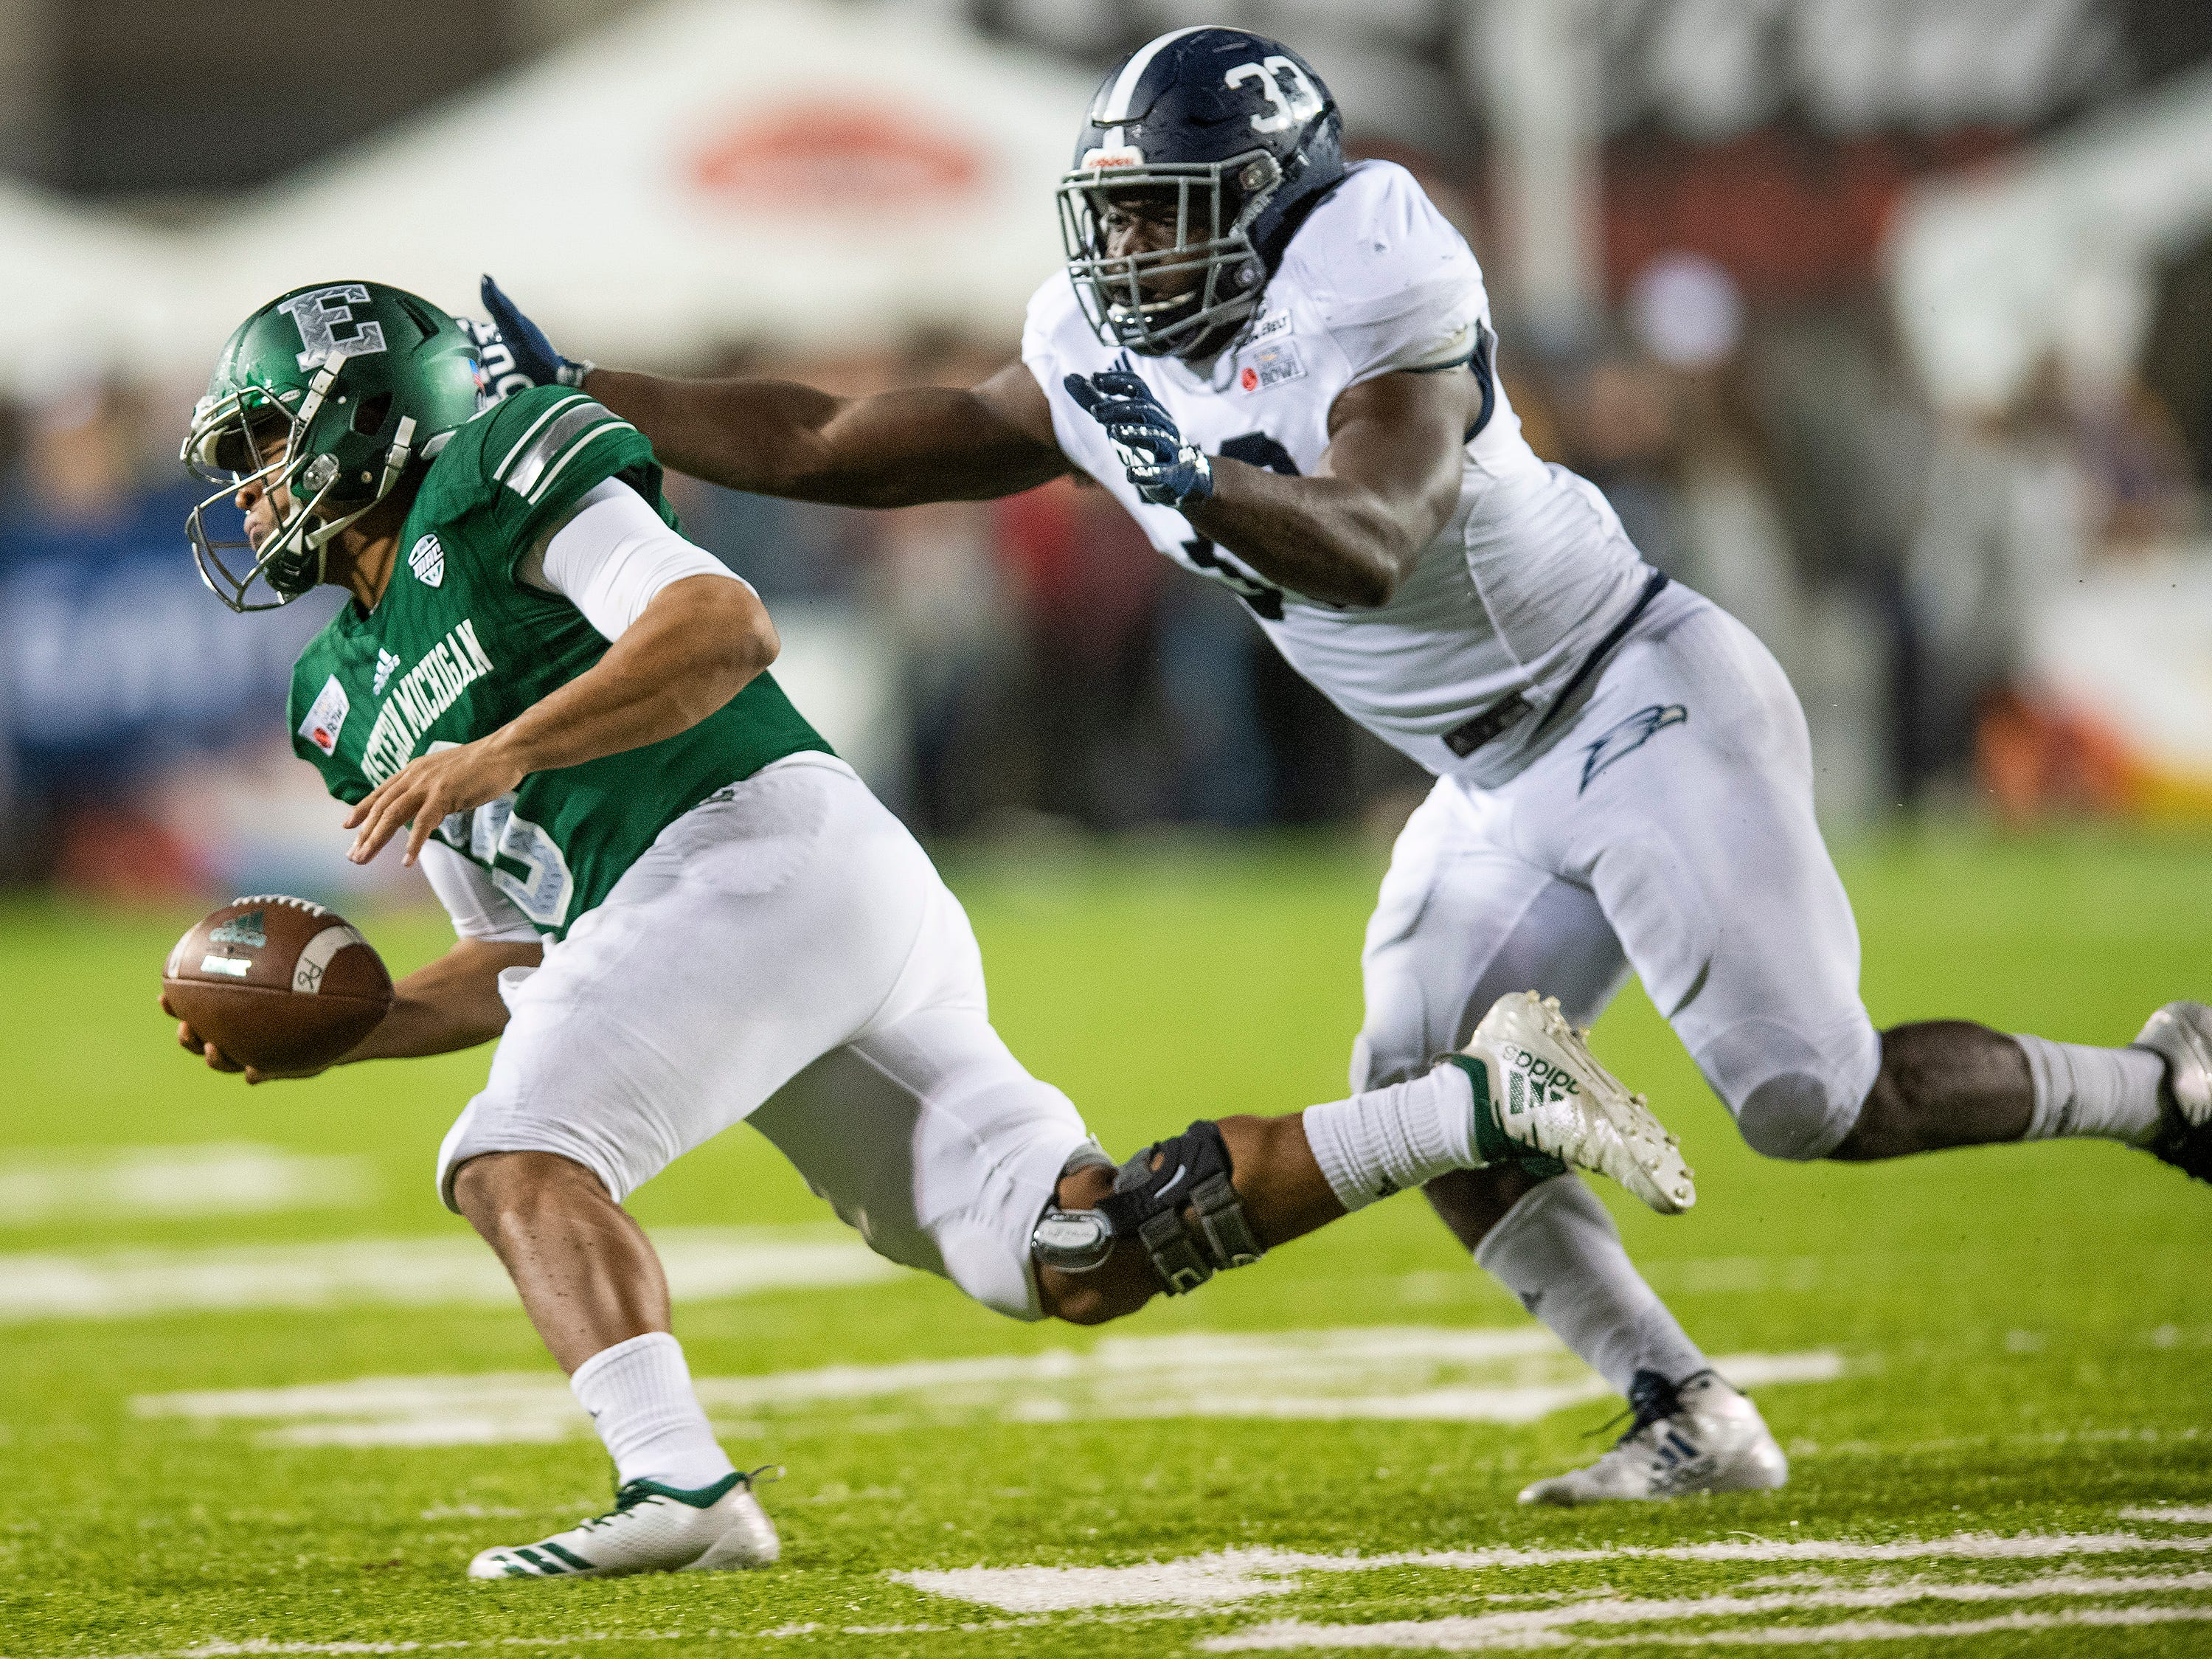 Eastern Michigan quarterback Mike Glass, III, (9)  is chased down by Georgia Southern inside linebacker Tomarcio Reese (33) in the Raycom Media  Camellia Bowl held at Cramton Bowl in Montgomery, Ala., on Saturday December 15, 2018.